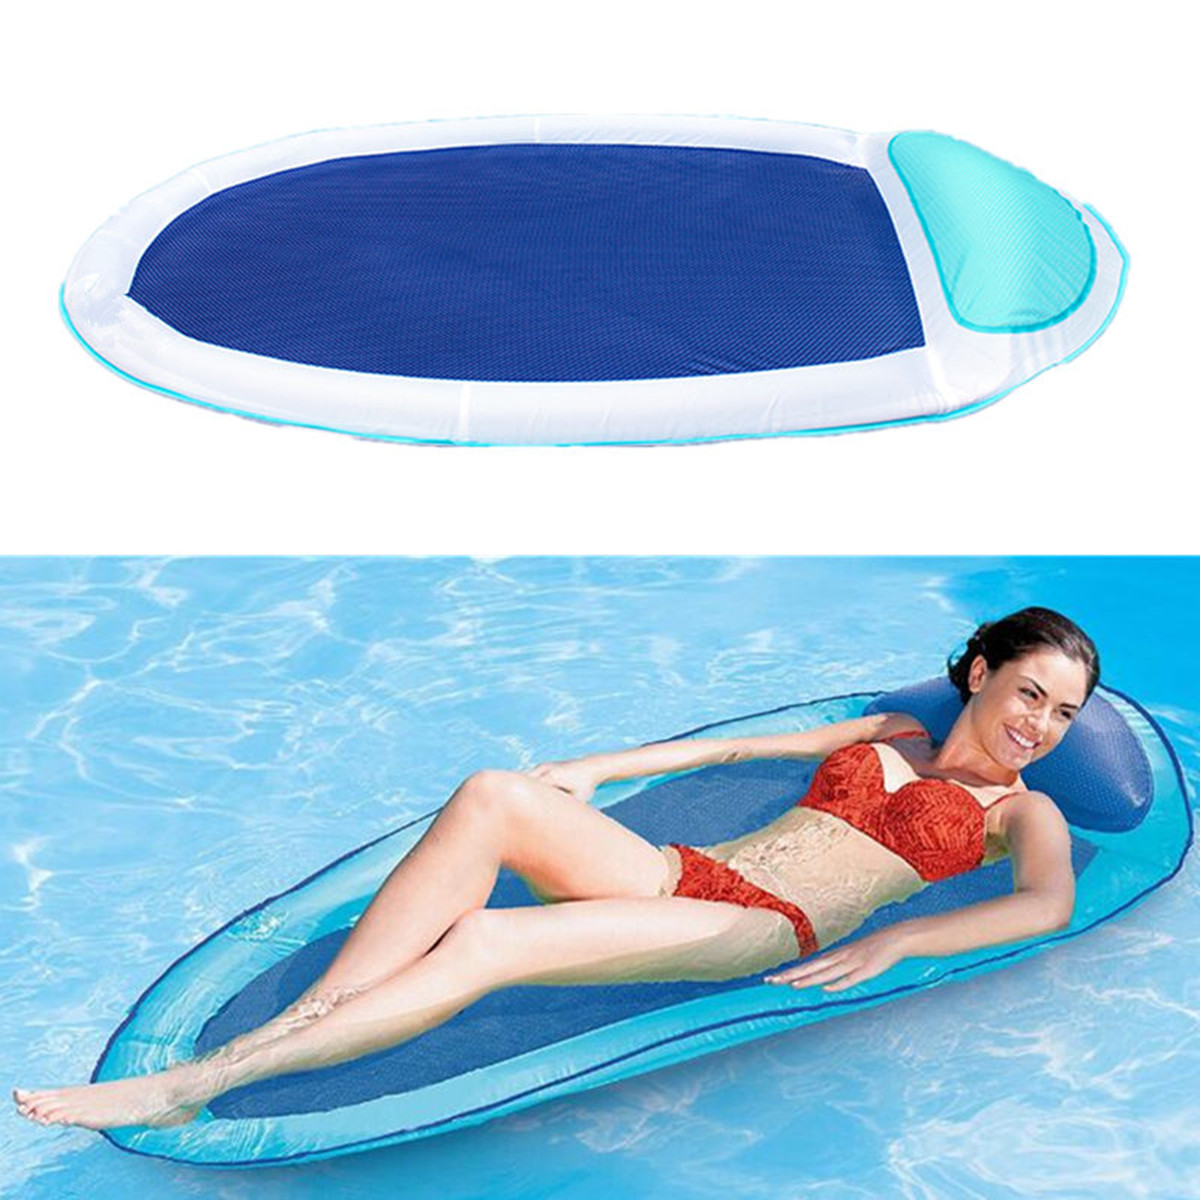 Swimming Accessories Summer Outdoor Beach Pool Inflatable Swim Lounge Chair Interactive Fun Kayak For Fishing Swimming Pool Toys Swimming Float 20